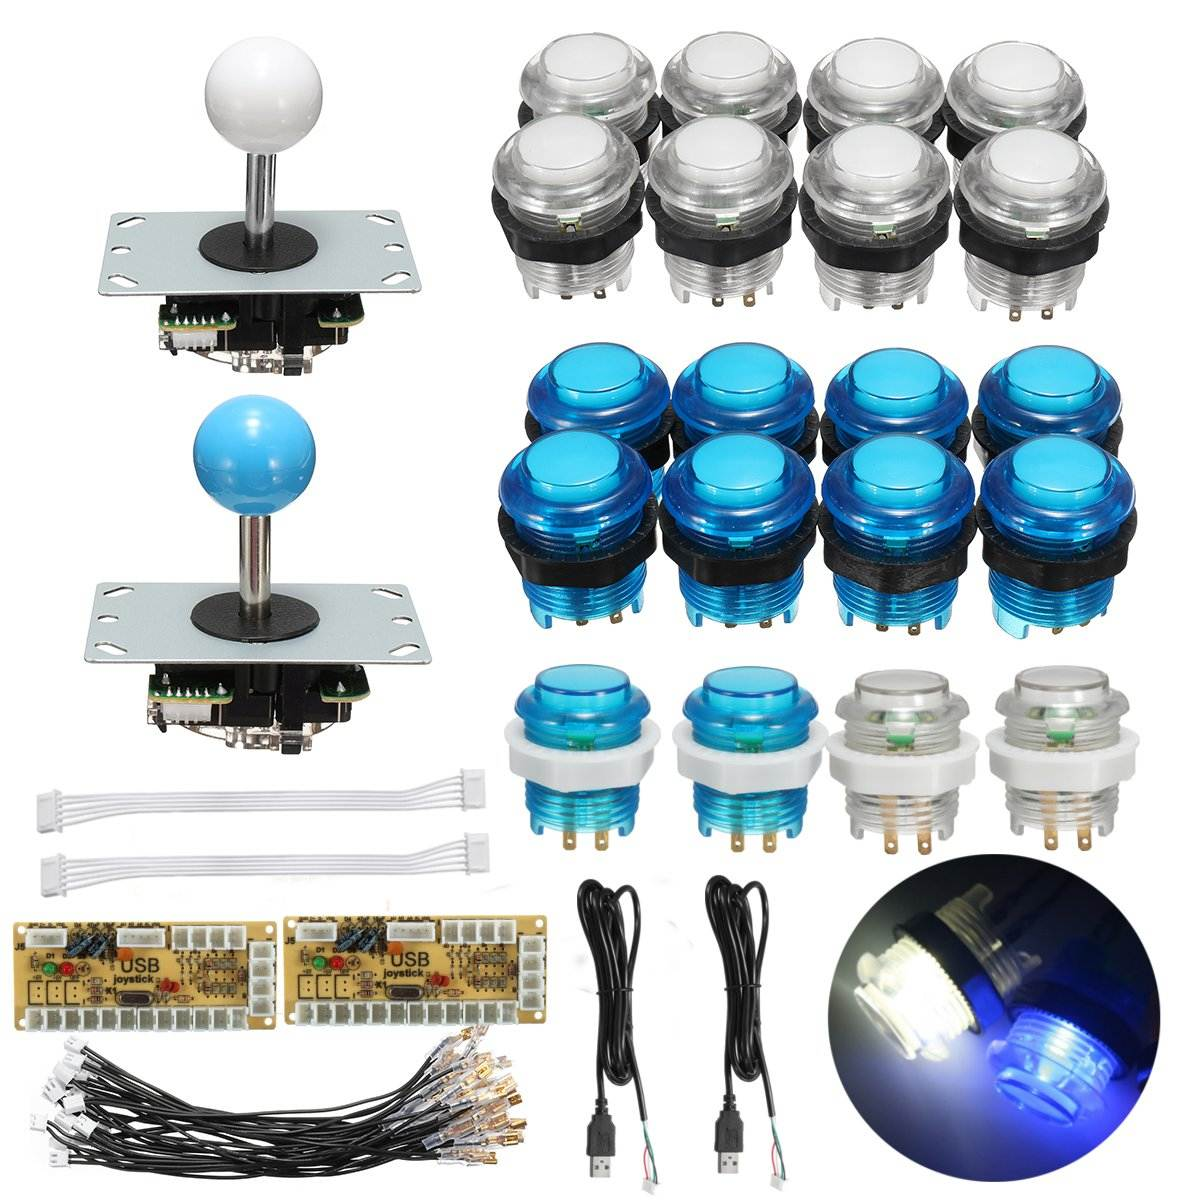 Arcade Joystick DIY Kit Parts With LED Push Button + Joystick + Zero Delay USB Encoder + Cables Game Joystick Arcade DIY Kits arcade parts bundles kit with 60 in 1 board power supply joystick push button microswitch harness glass clips coin door camlock